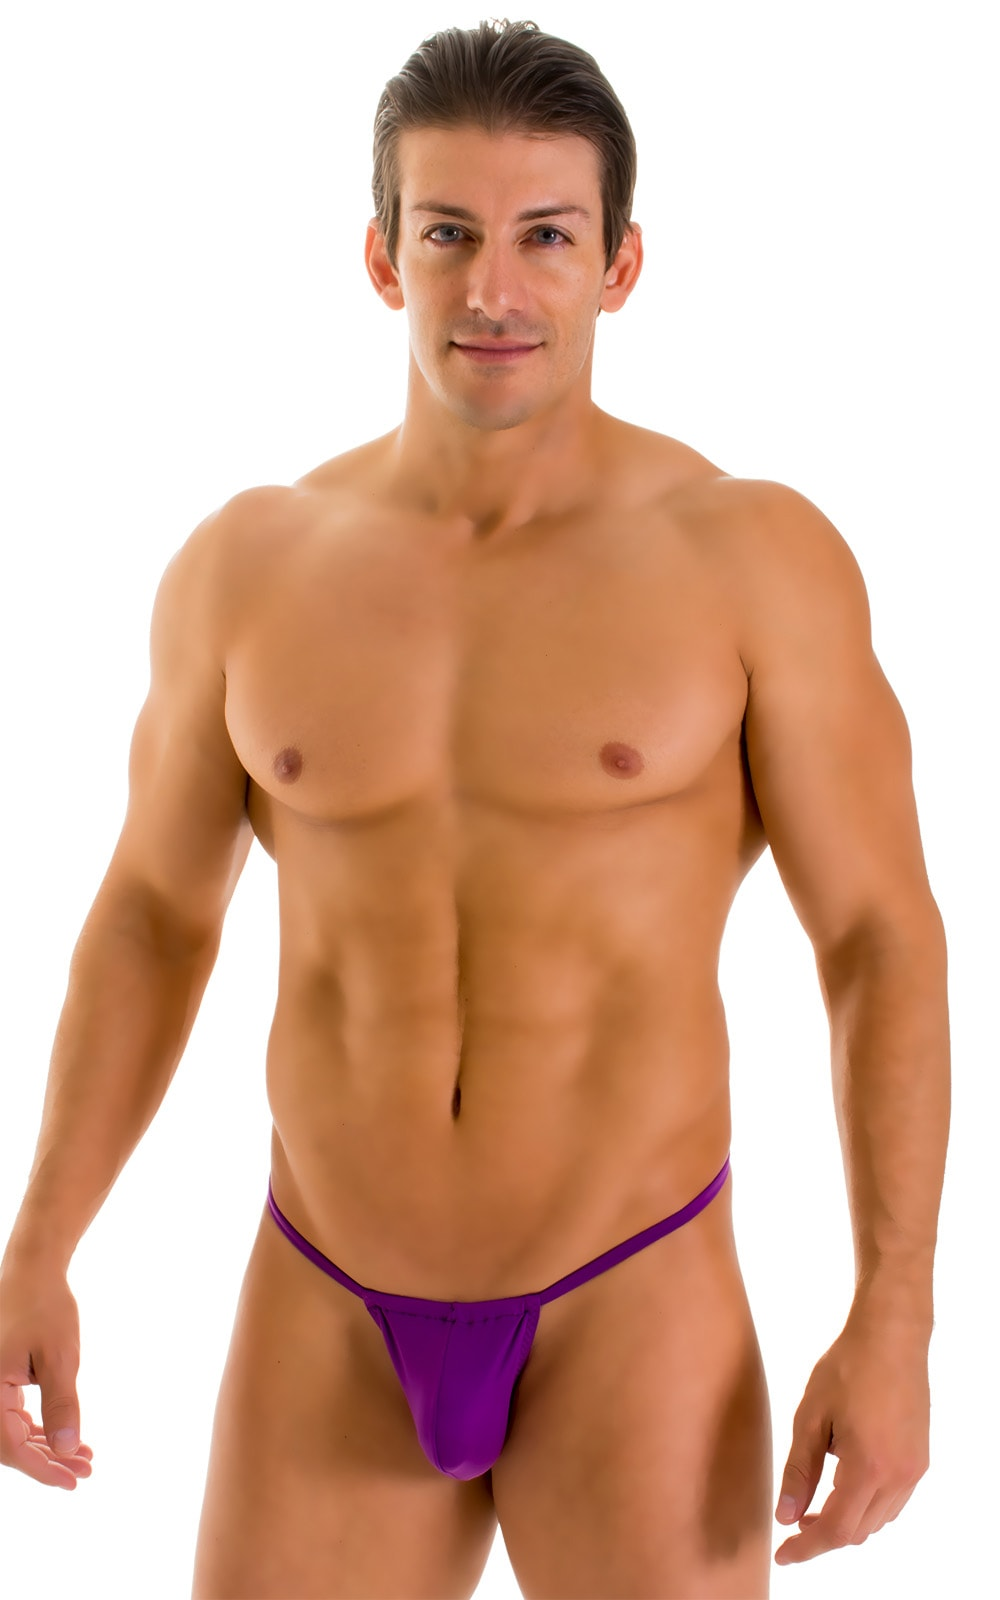 G String Swimsuit - Adjustable Pouch in ThinSKINZ Grape  3